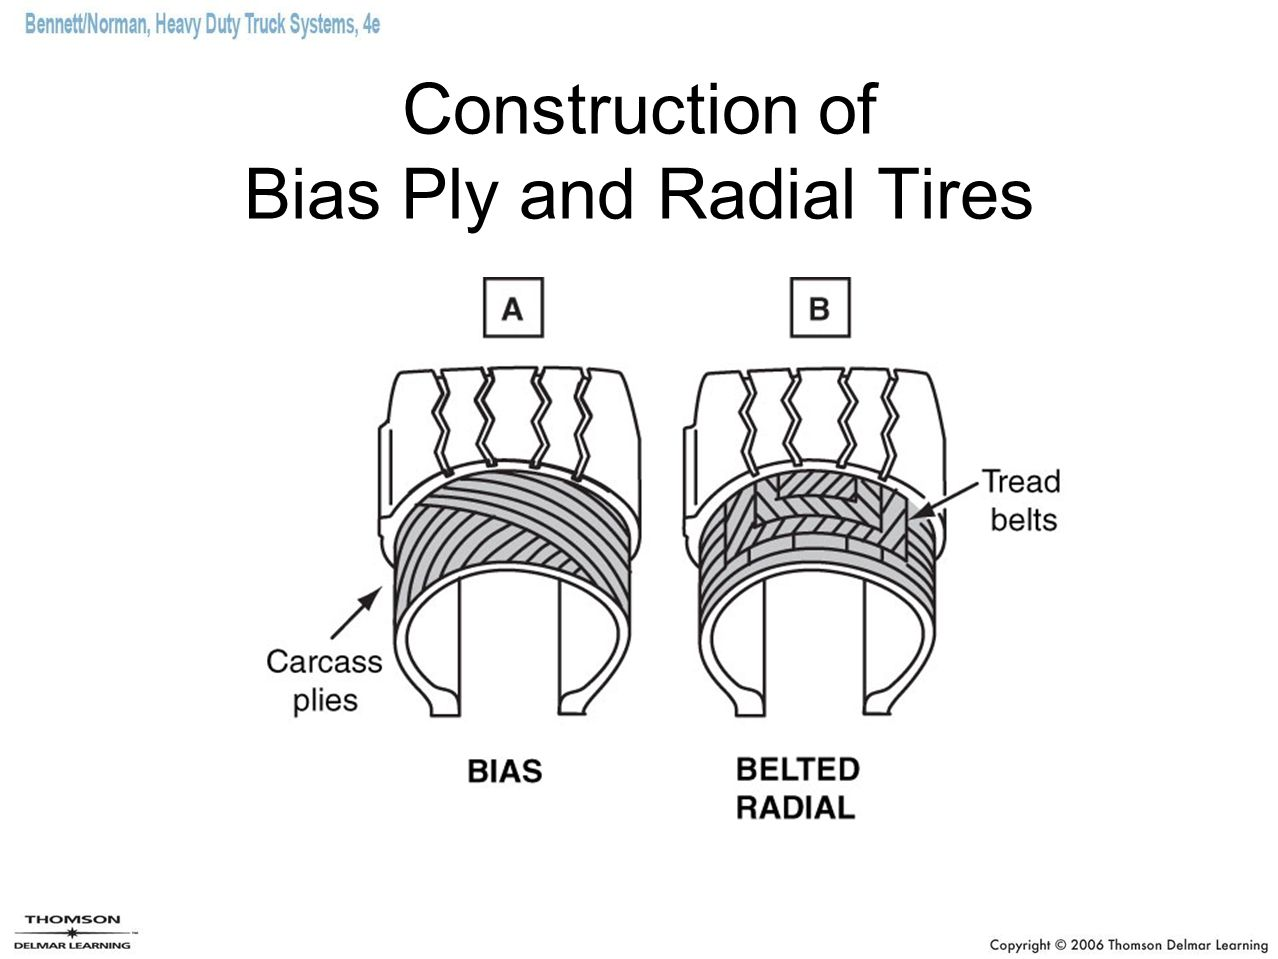 Construction of Bias Ply and Radial Tires